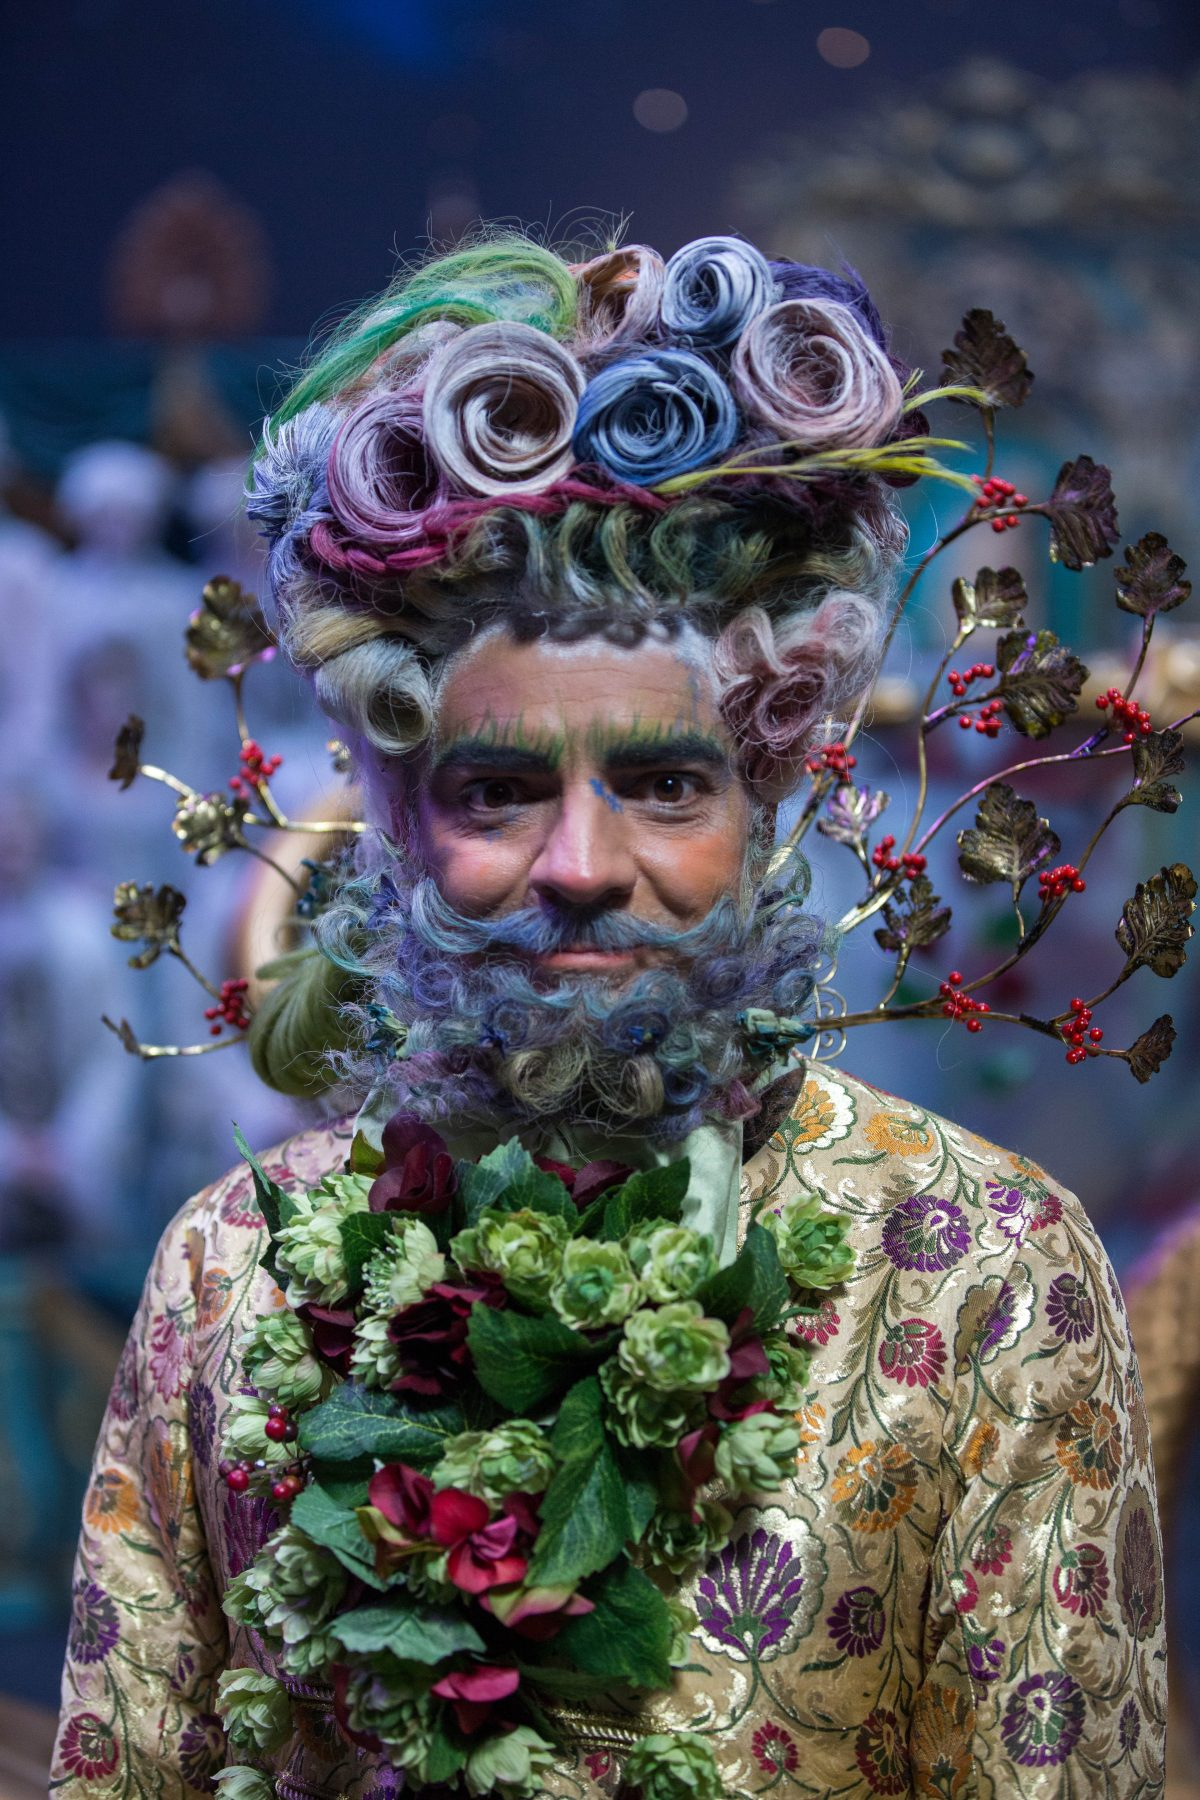 The Keeper of the Flower Realm